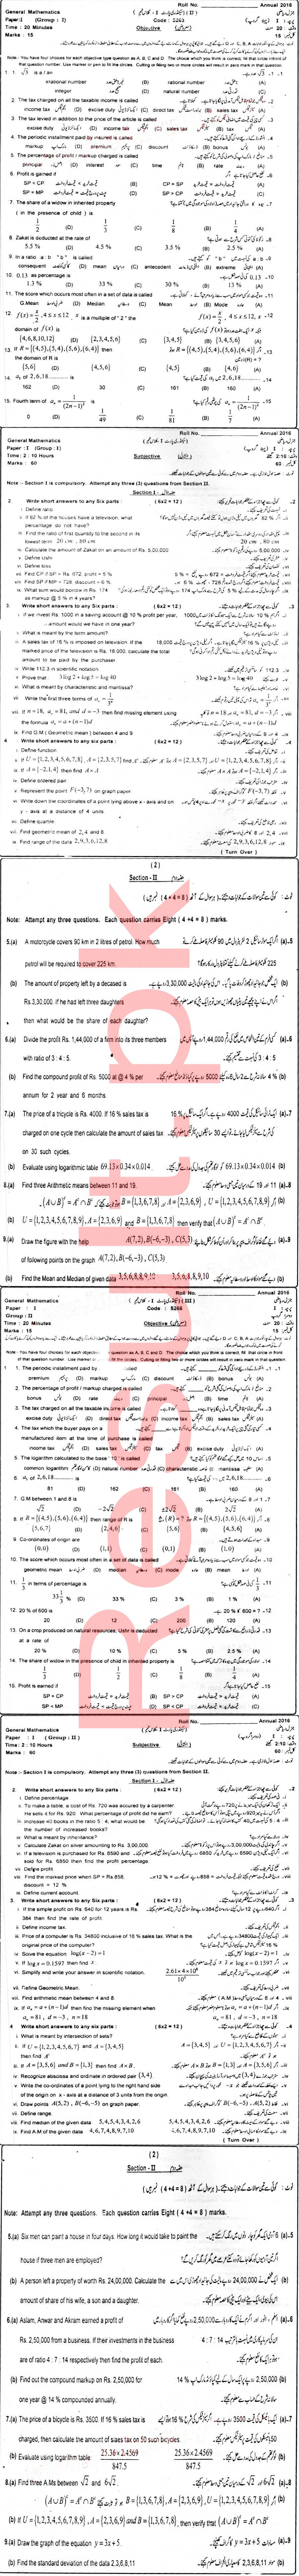 BISE Sahiwal Board Past Papers 2019 Matric, SSC Part 1 & 2